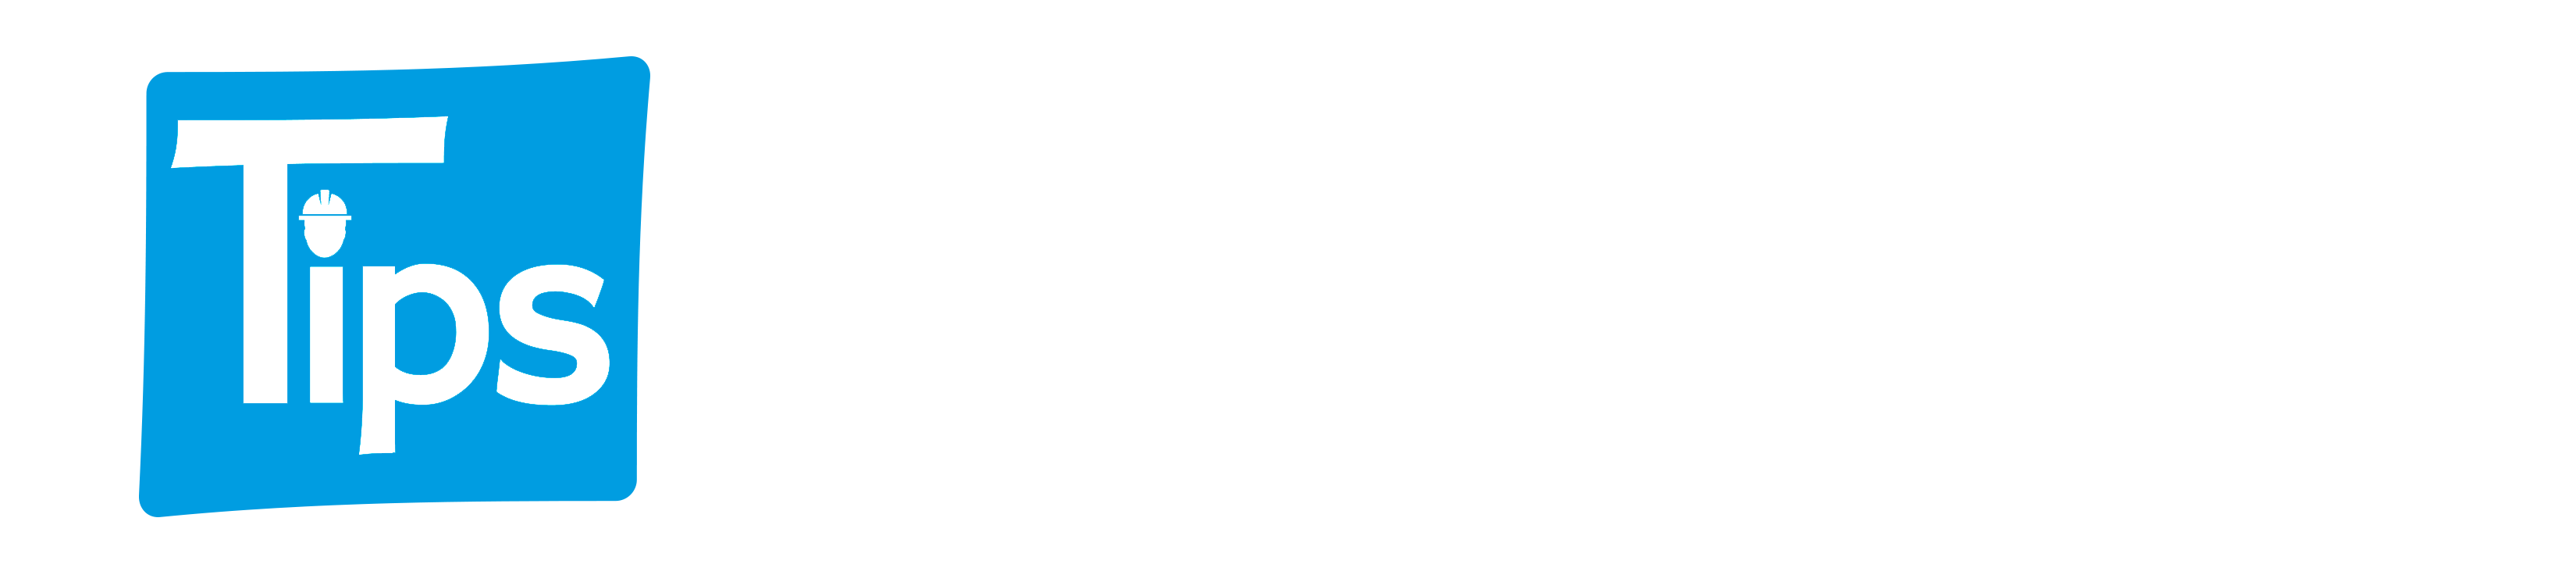 Training Industrial Project & Services